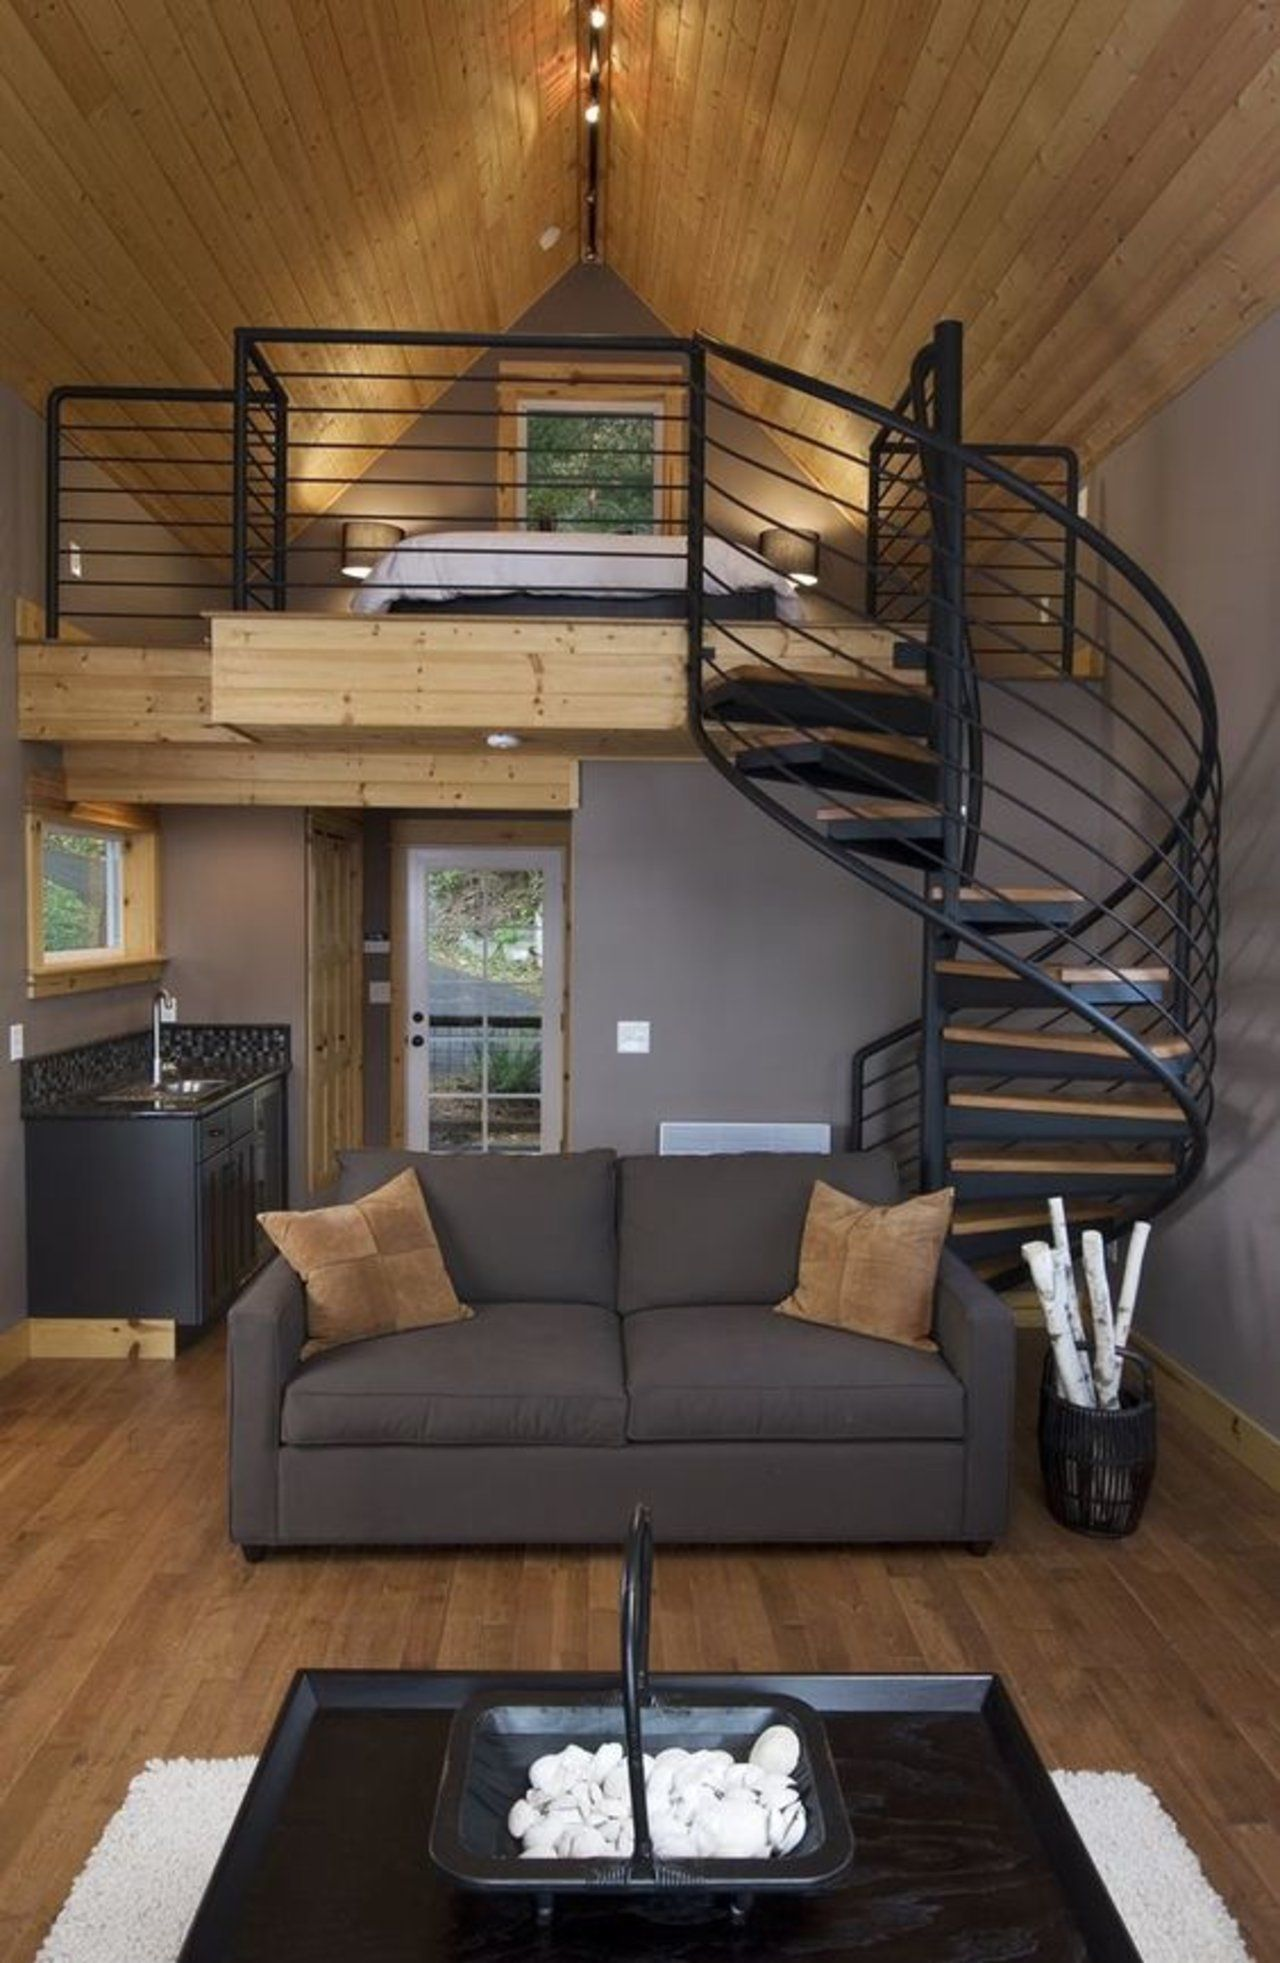 6 tiny houses we could actually live in pinterest for Tiny houses plans with loft